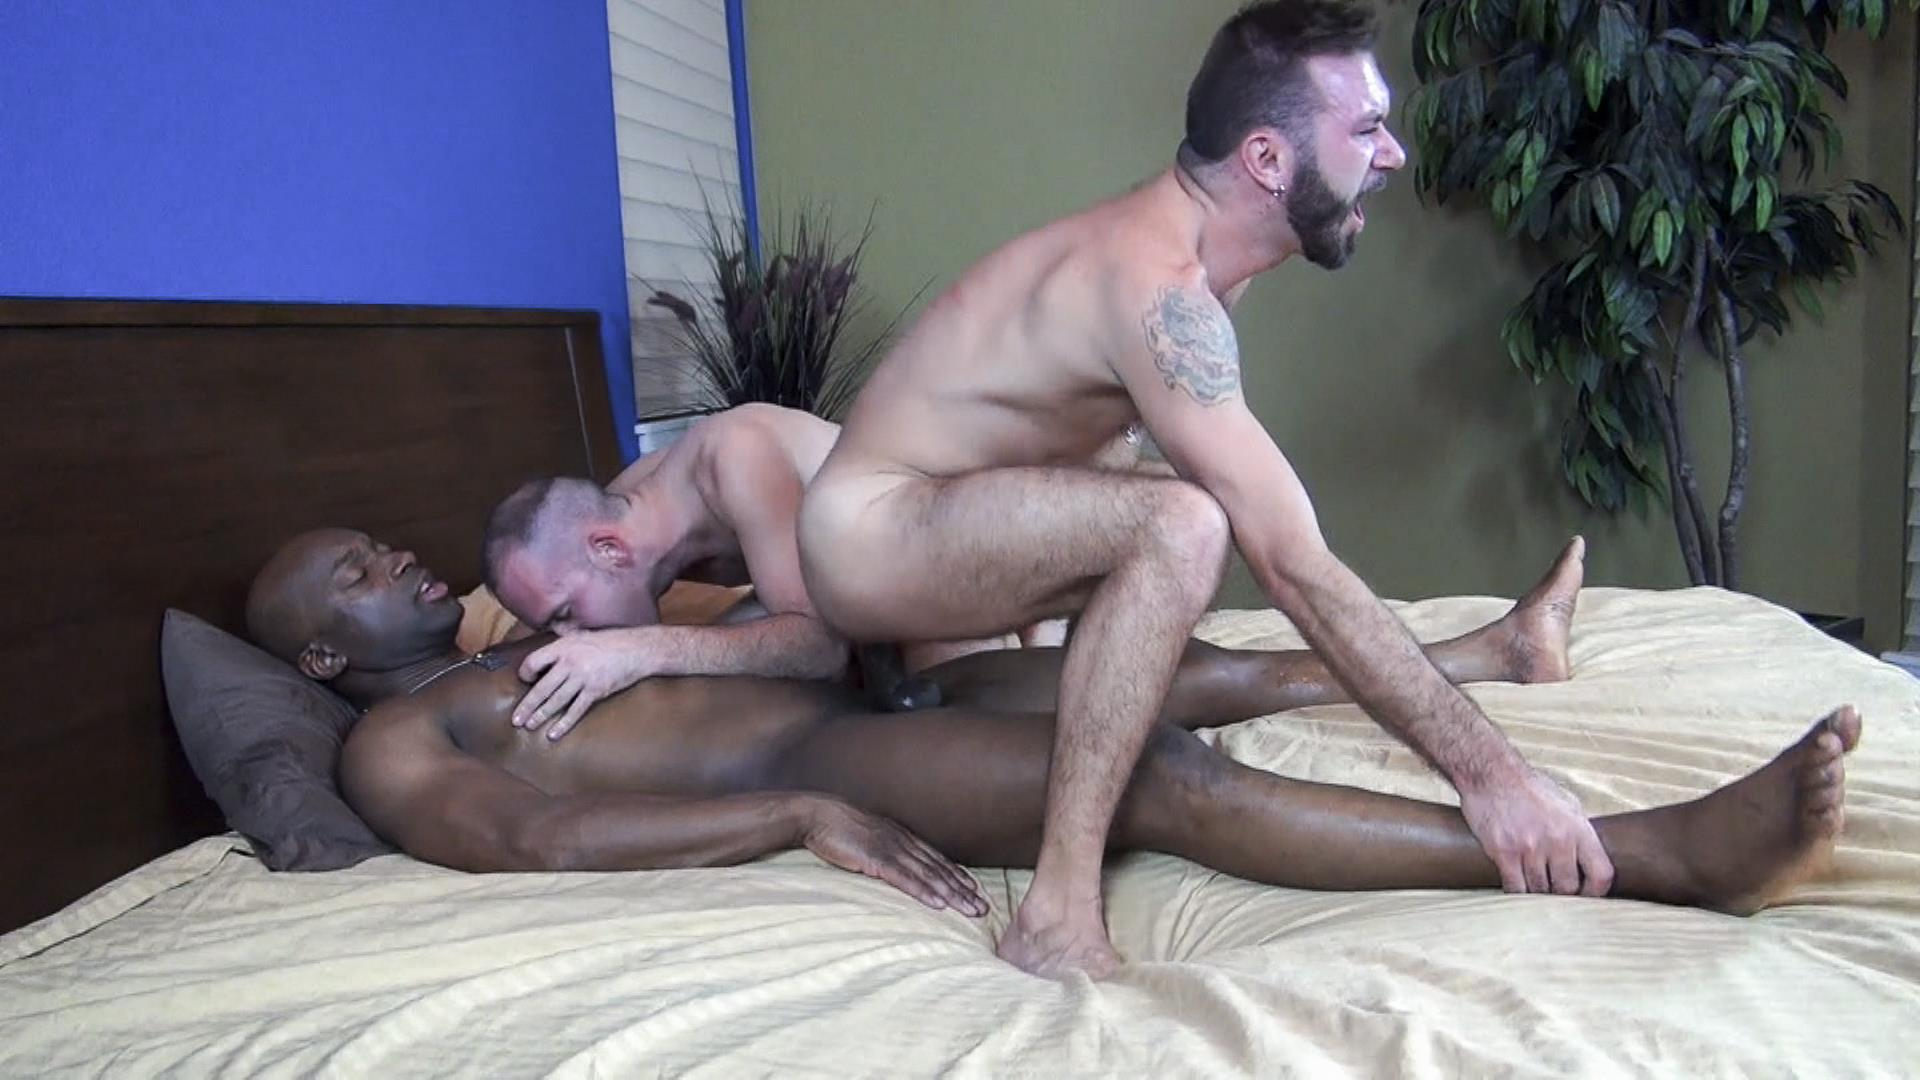 2 black bitches get fucked - Click here to watch this full length interracial bareback threesome gay sex  video and hundreds more amateur gay porn videos at Raw Fuck Club.